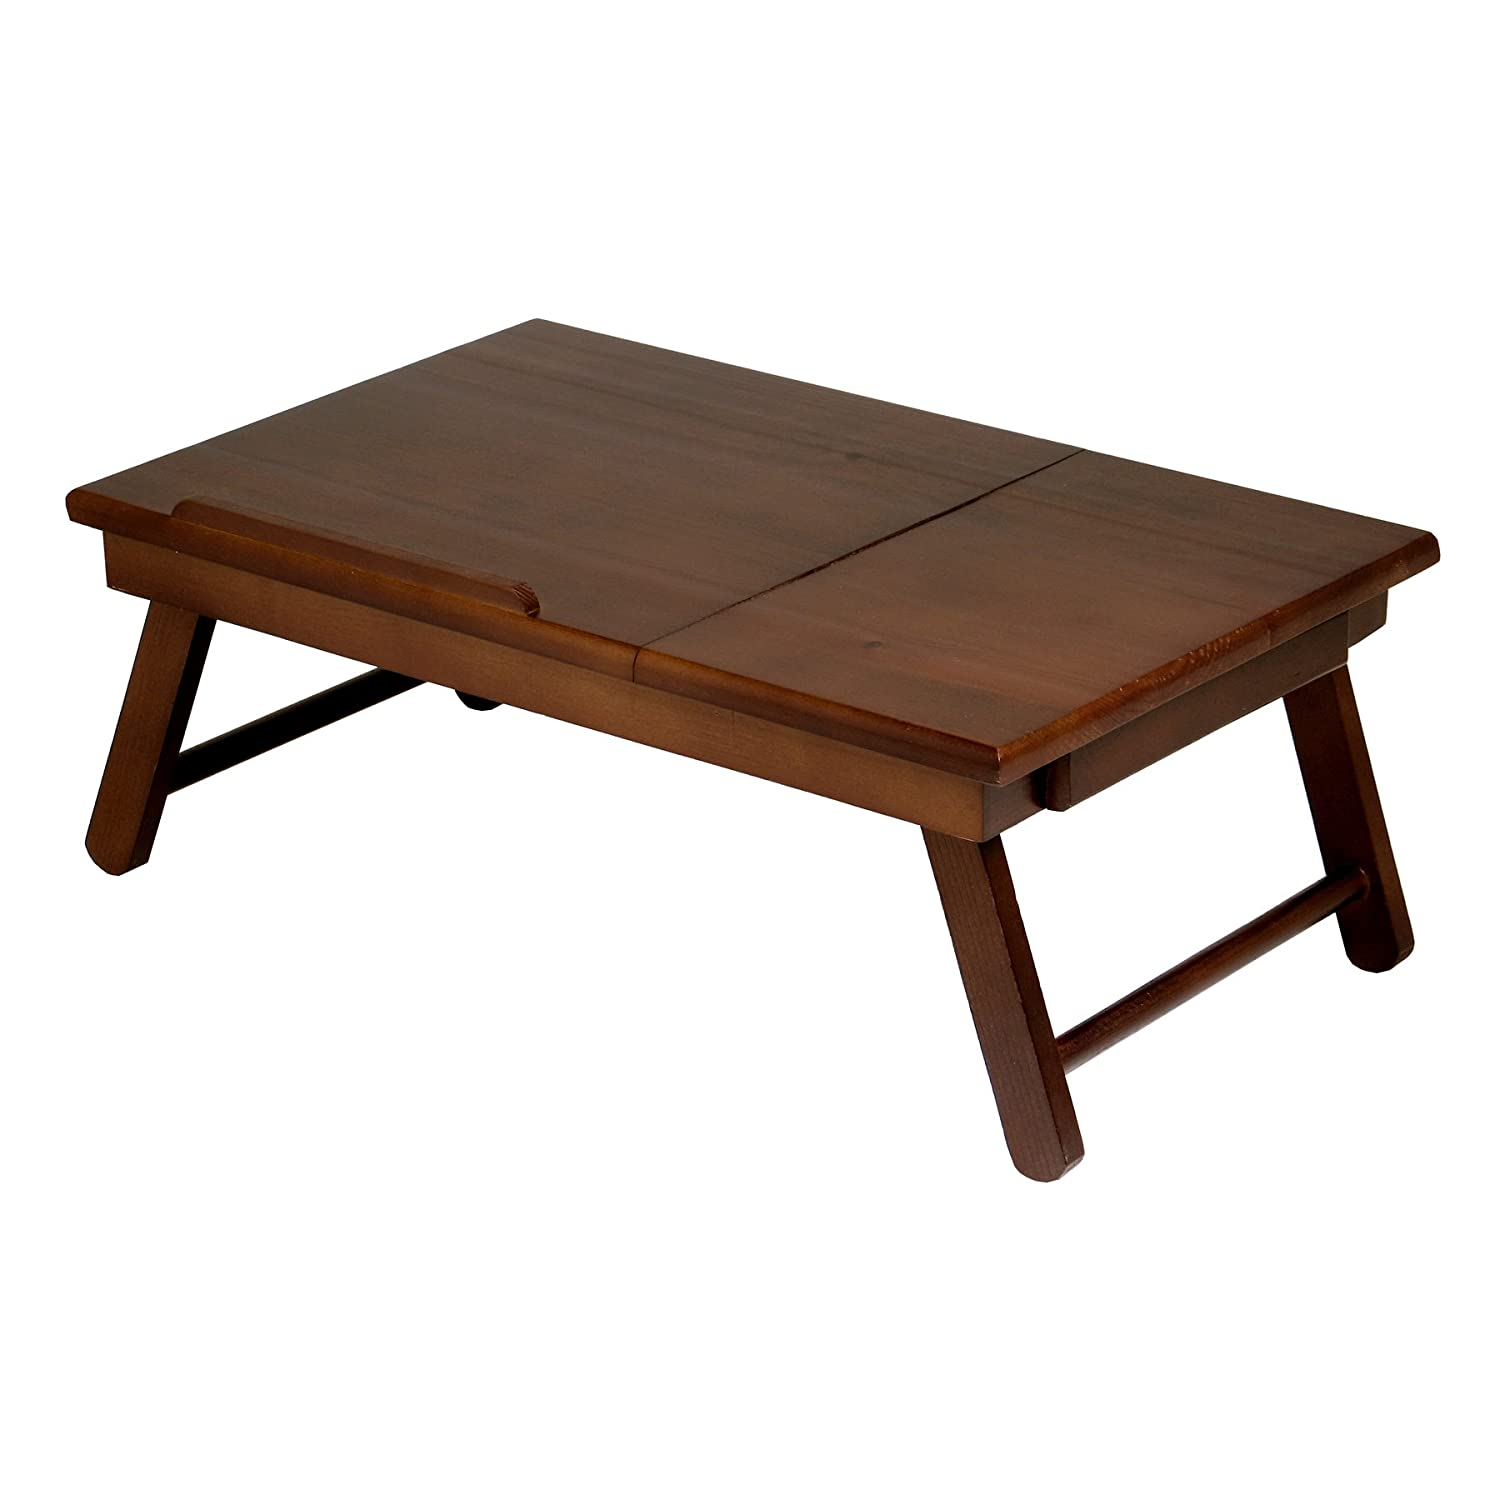 Laptop bed table tray - Amazon Com Winsome Wood Alden Lap Desk Flip Top With Drawer Foldable Legs Kitchen Dining